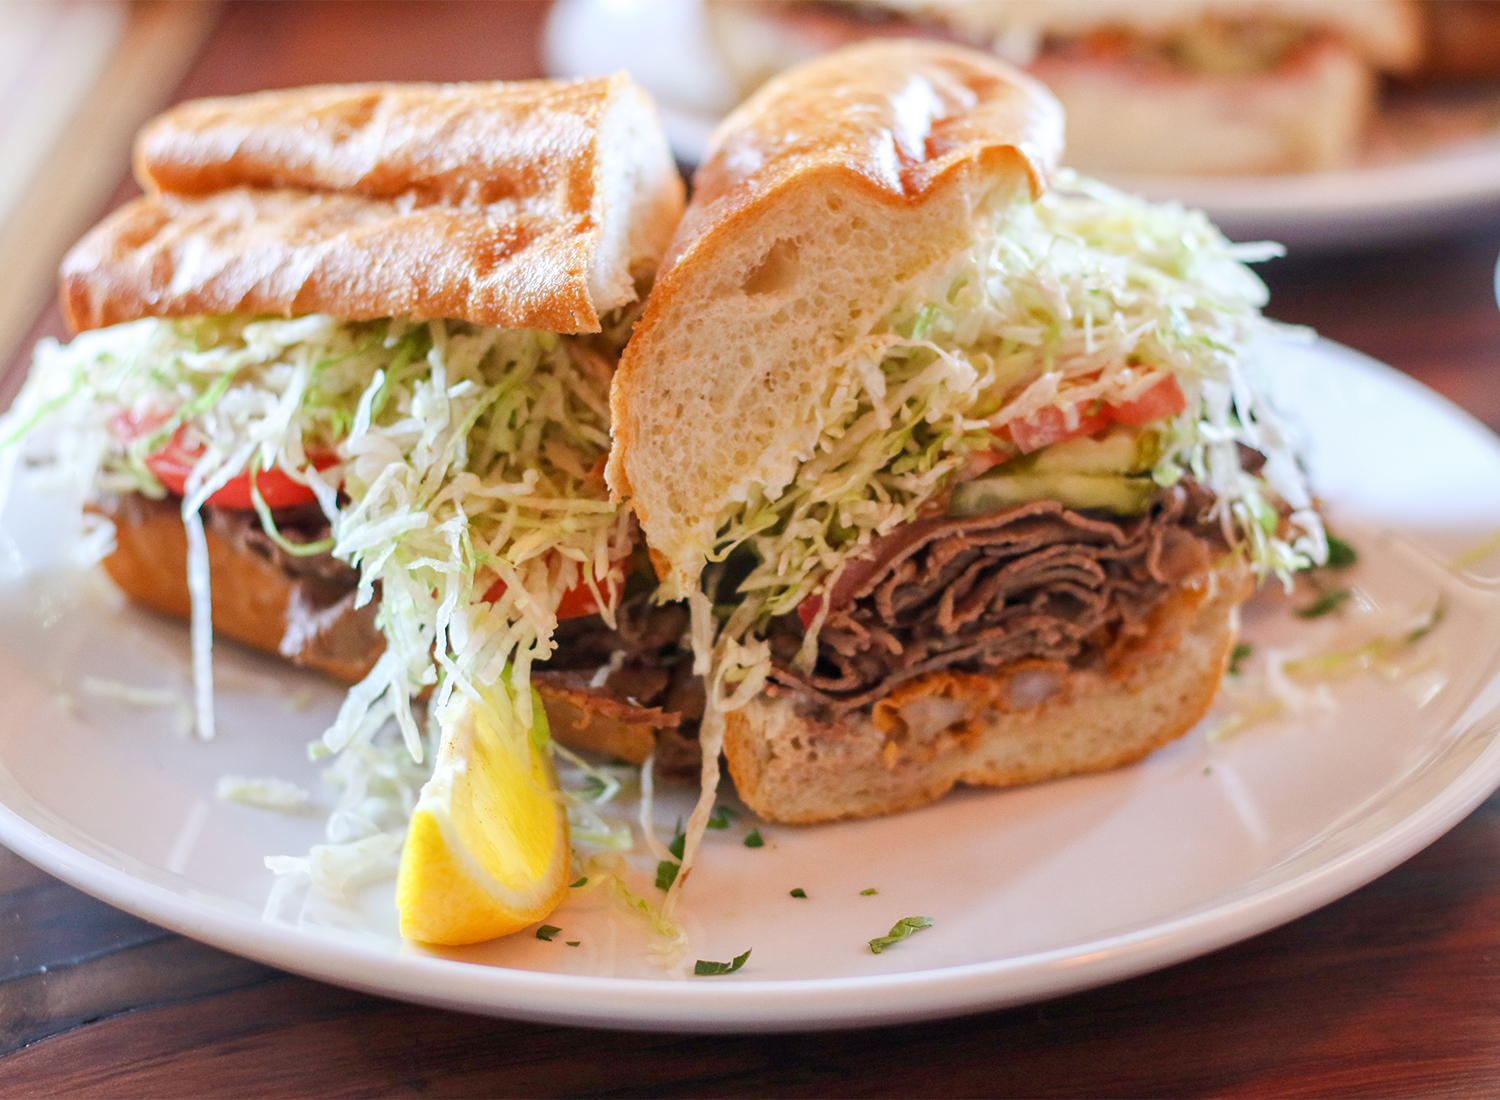 Surf and turf po-boy at Parish Cafe in Santa Rosa. Heather irwin/PD